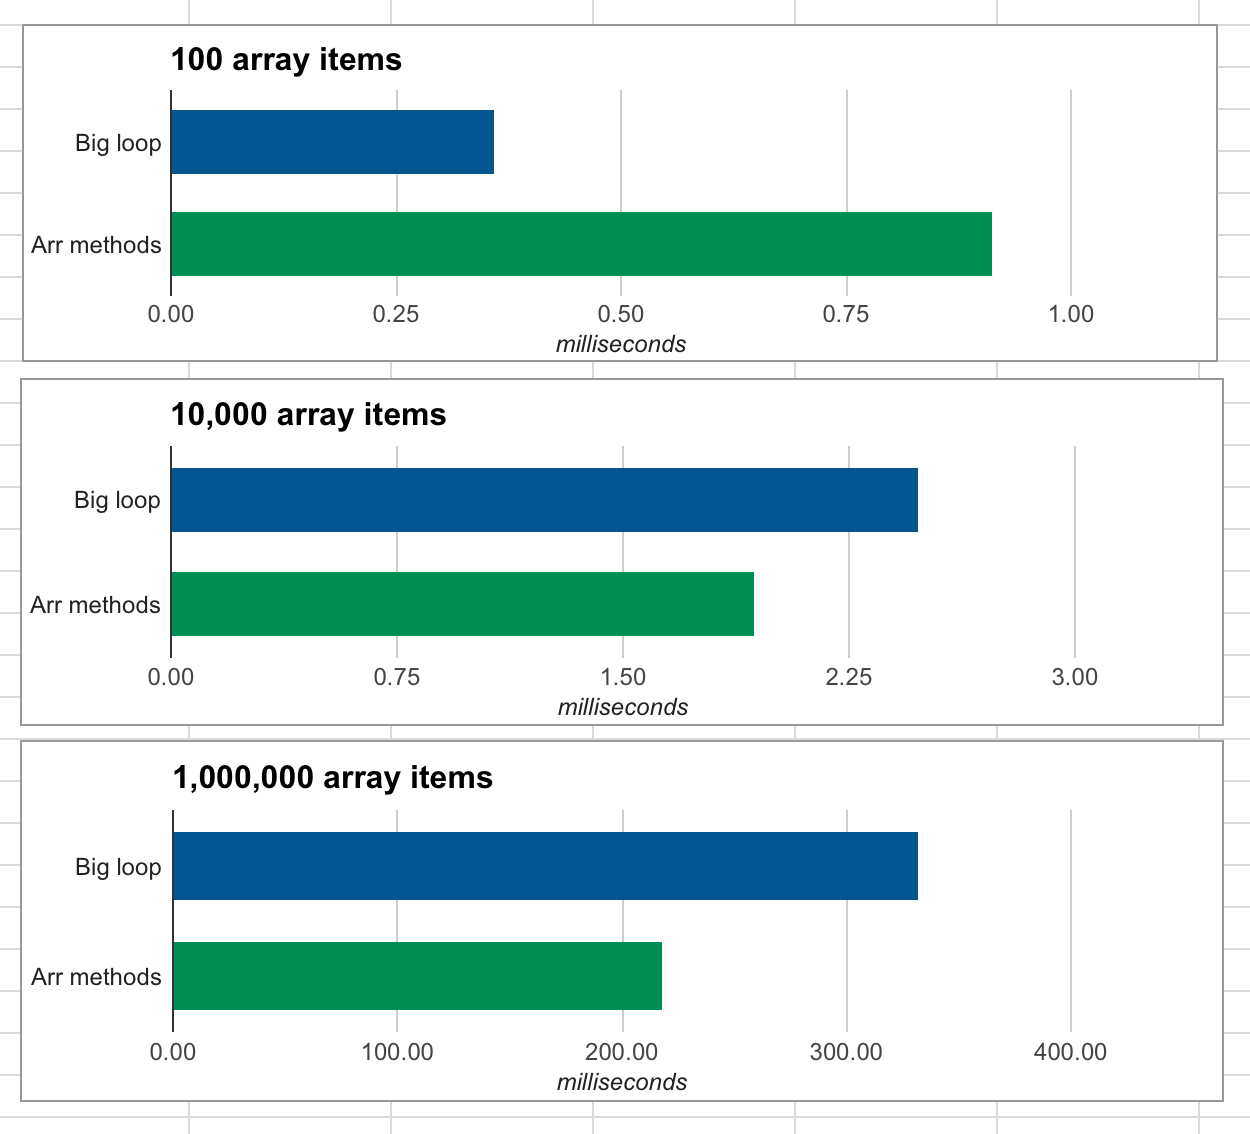 Array method performance is generally better than that of a big loop.